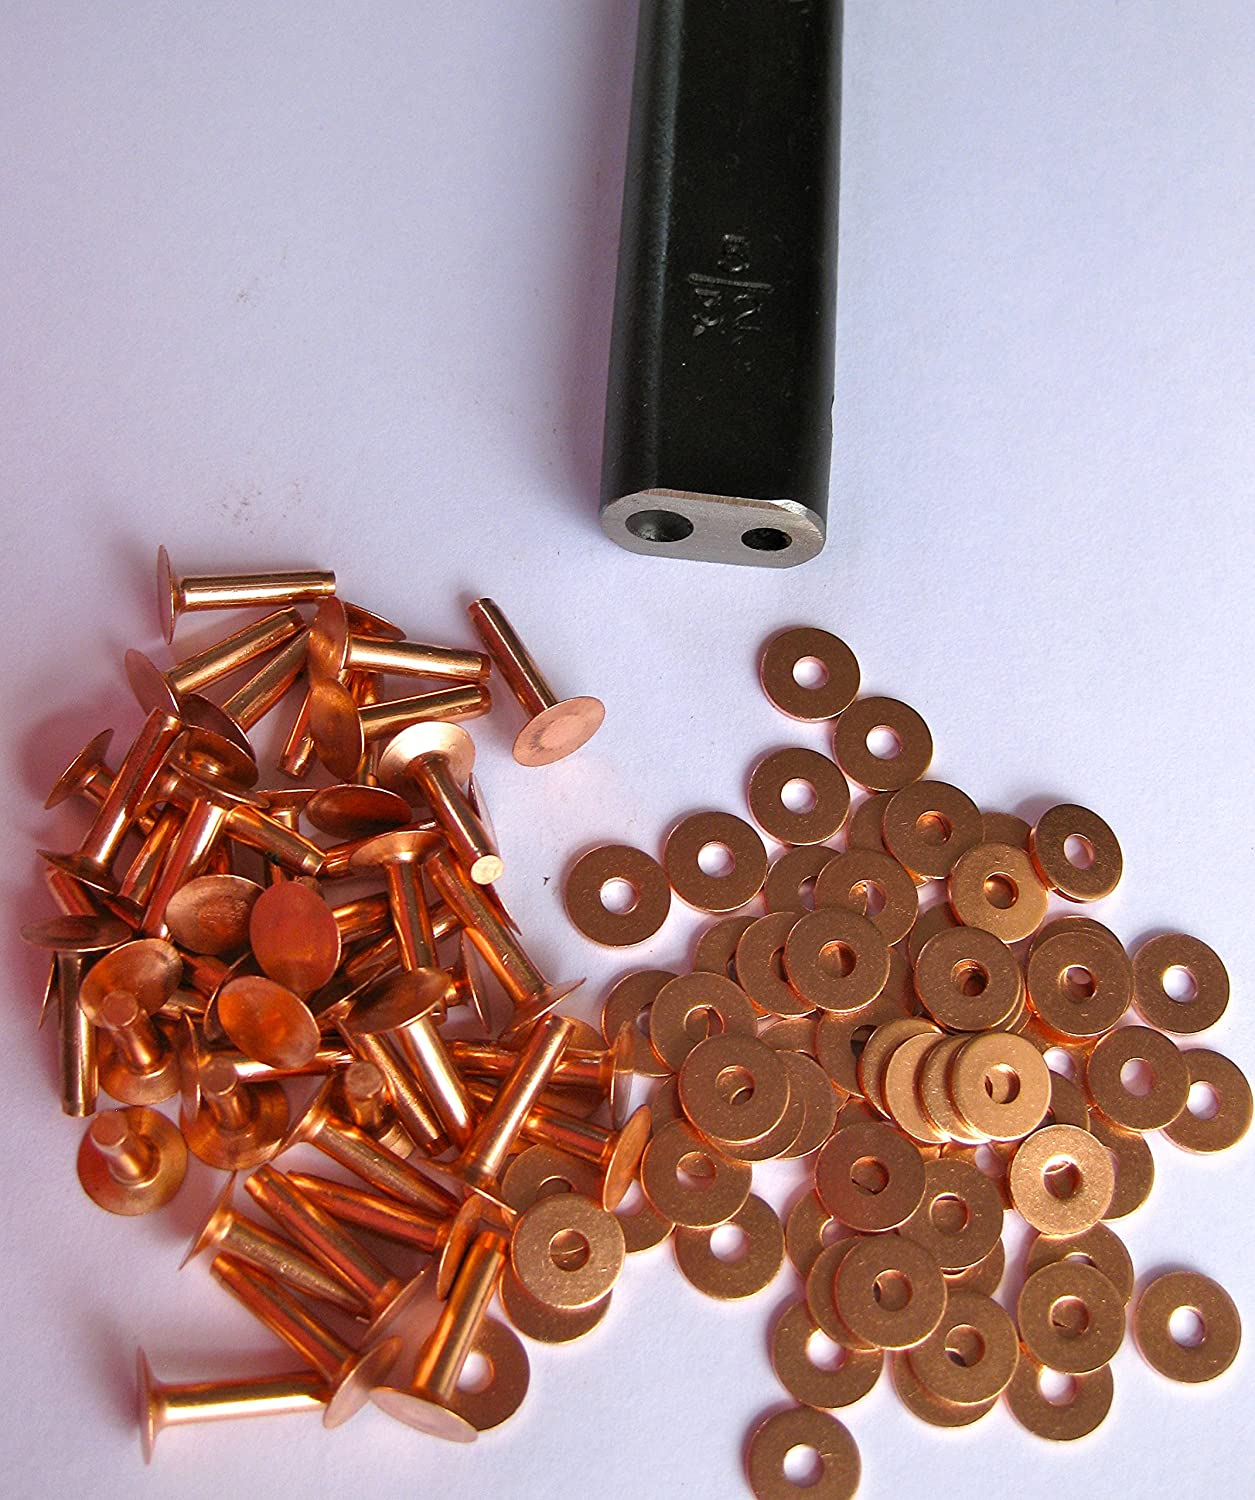 30 Copper saddlers rivets & setting tool 10 Gauge x 1/2 & washers R S Trade Supplies